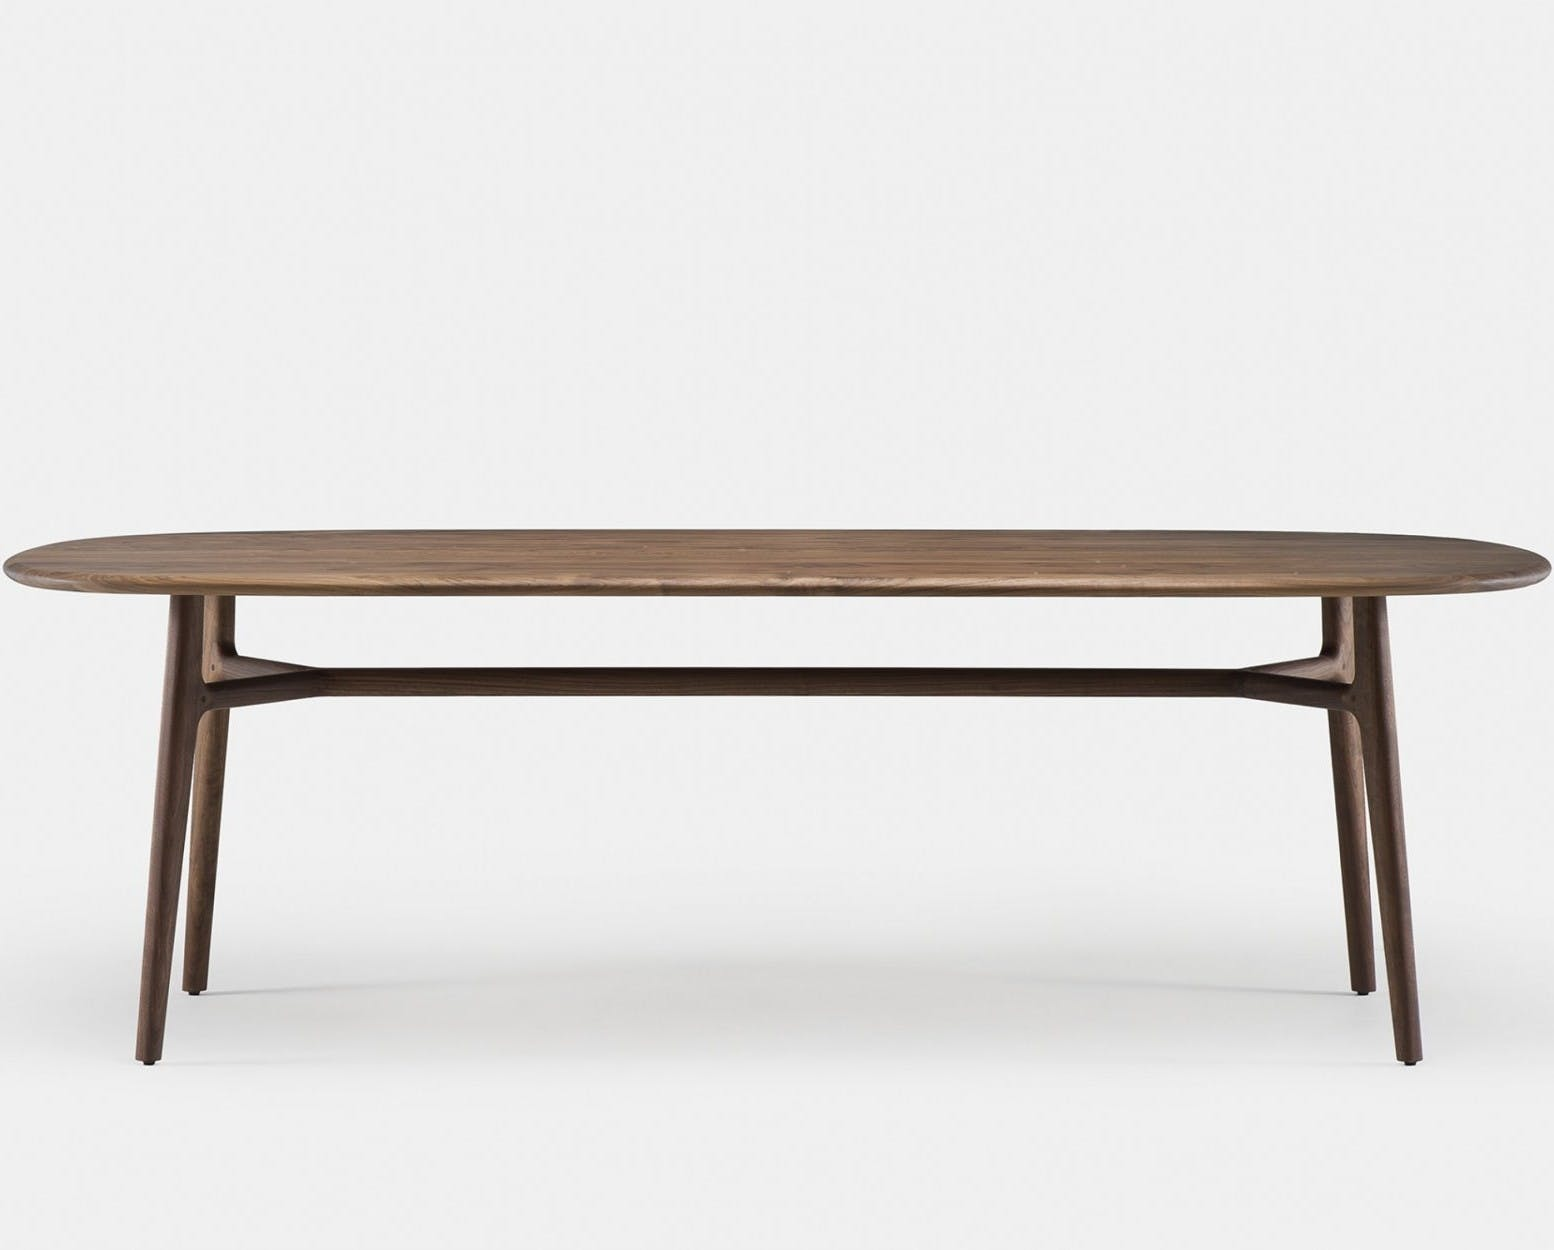 783 Solo Oblong Table By Nerihu In Walnut   Frontweb 1840X1250